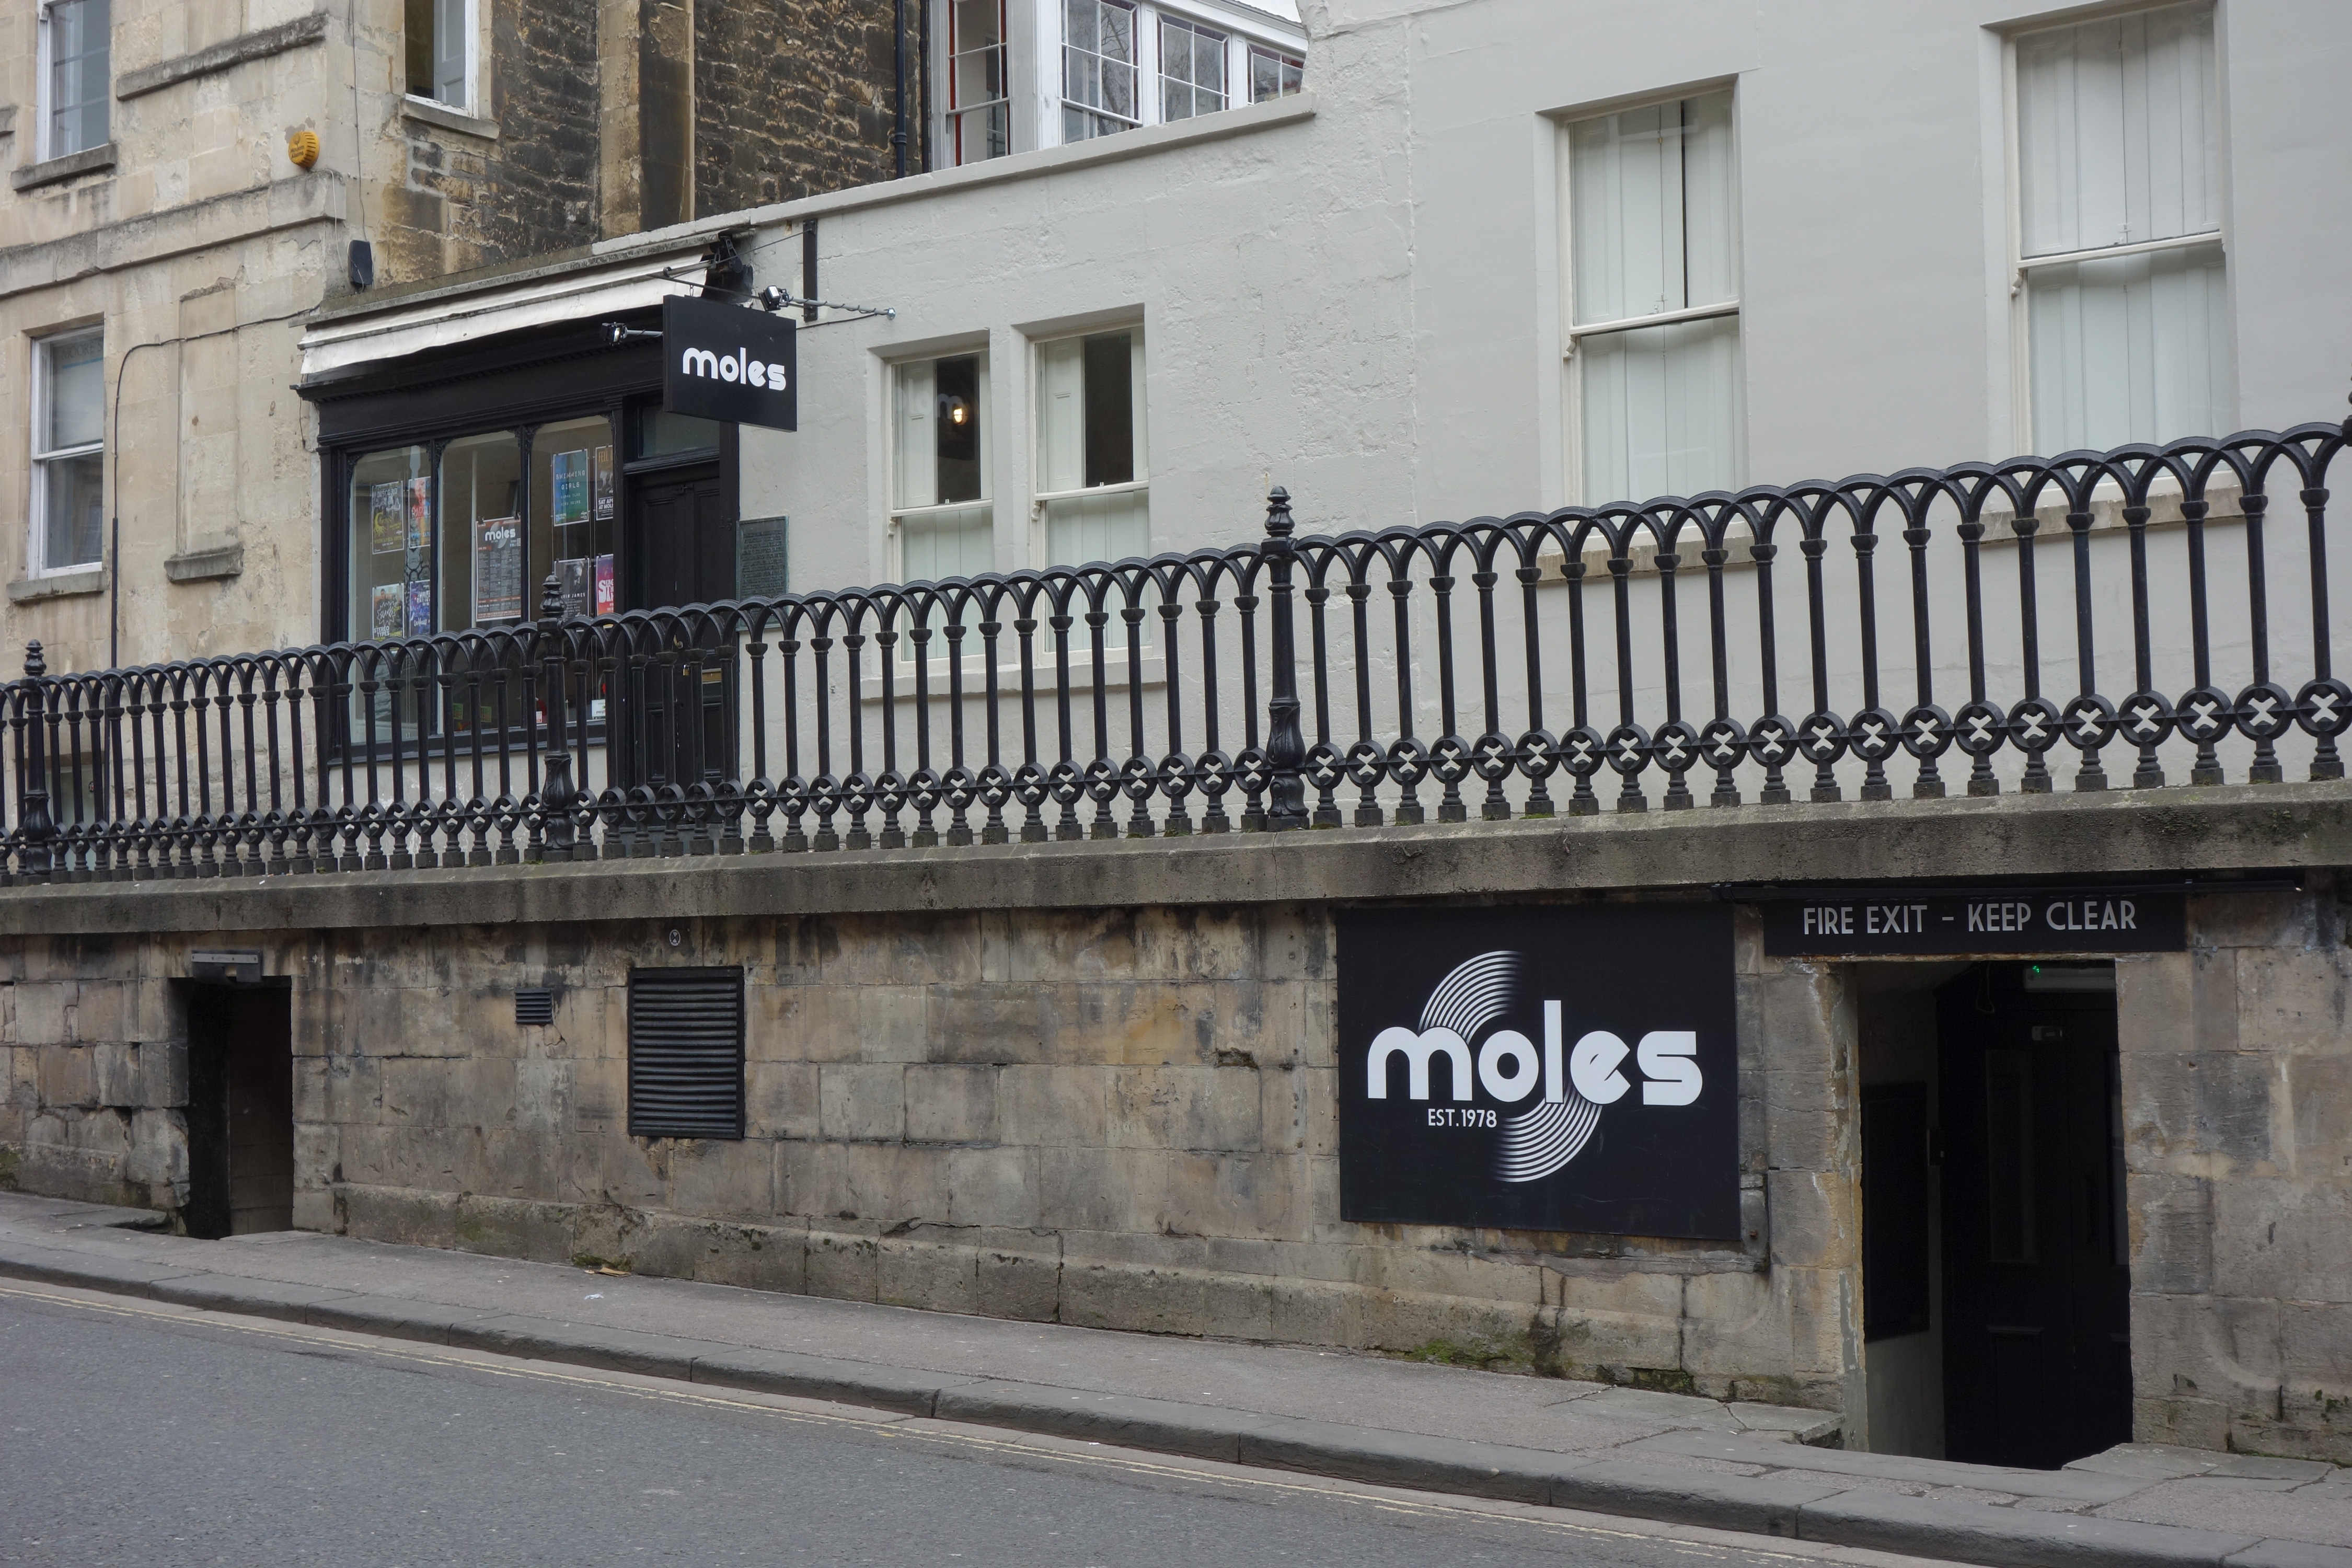 A small door in a low stone parapet with a sign Moles, with a shop front above also signed Moles